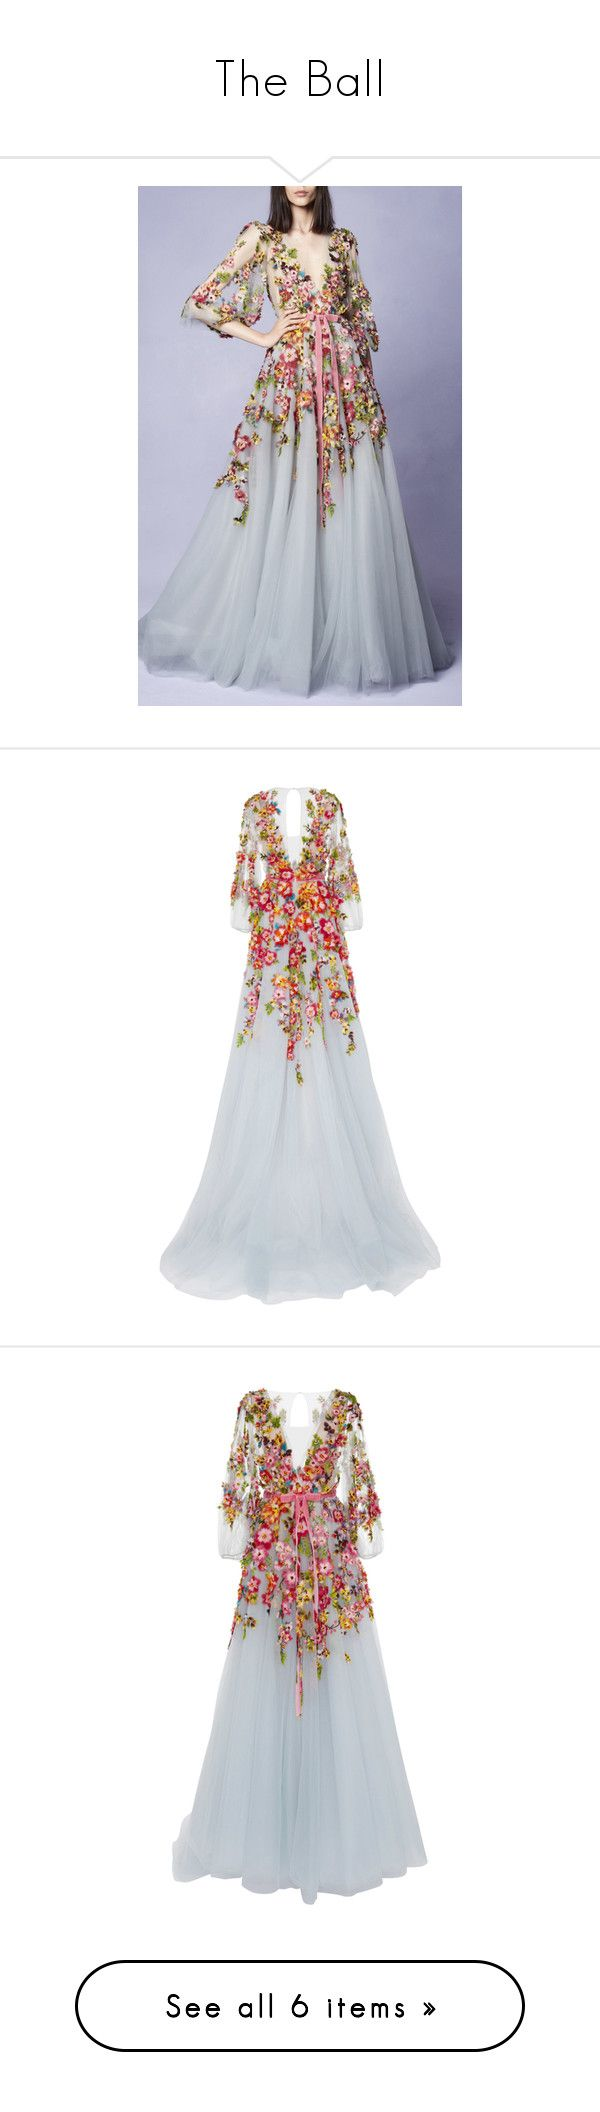 """""""The Ball"""" by suellenborinhoran ❤ liked on Polyvore featuring dresses, gowns, plunging v neck dress, silk gown, embroidered dress, peasant dress, a line dress, gown, marchesa and silk evening gowns"""